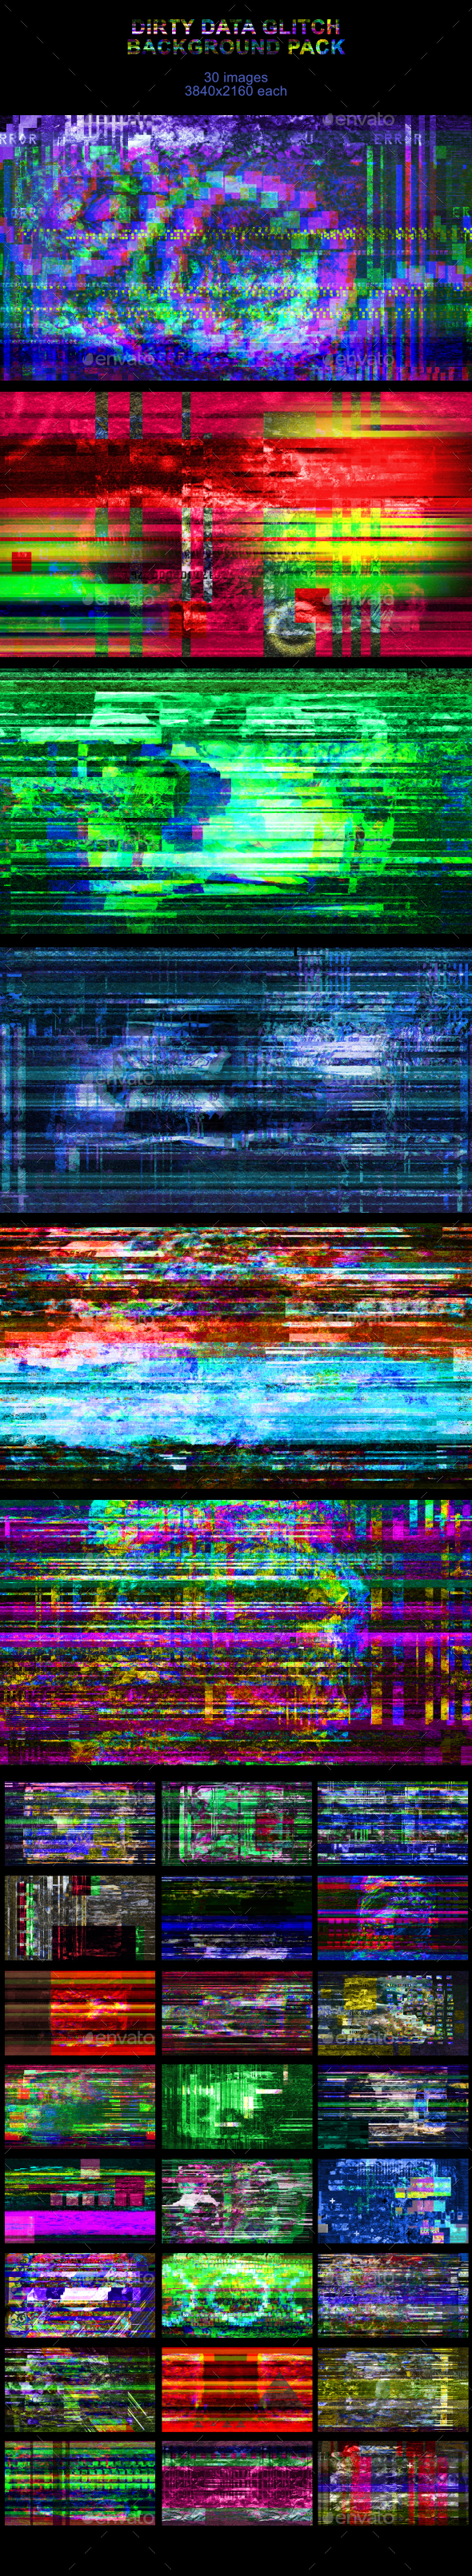 Dirty Data Glitch Background Pack - Tech / Futuristic Backgrounds